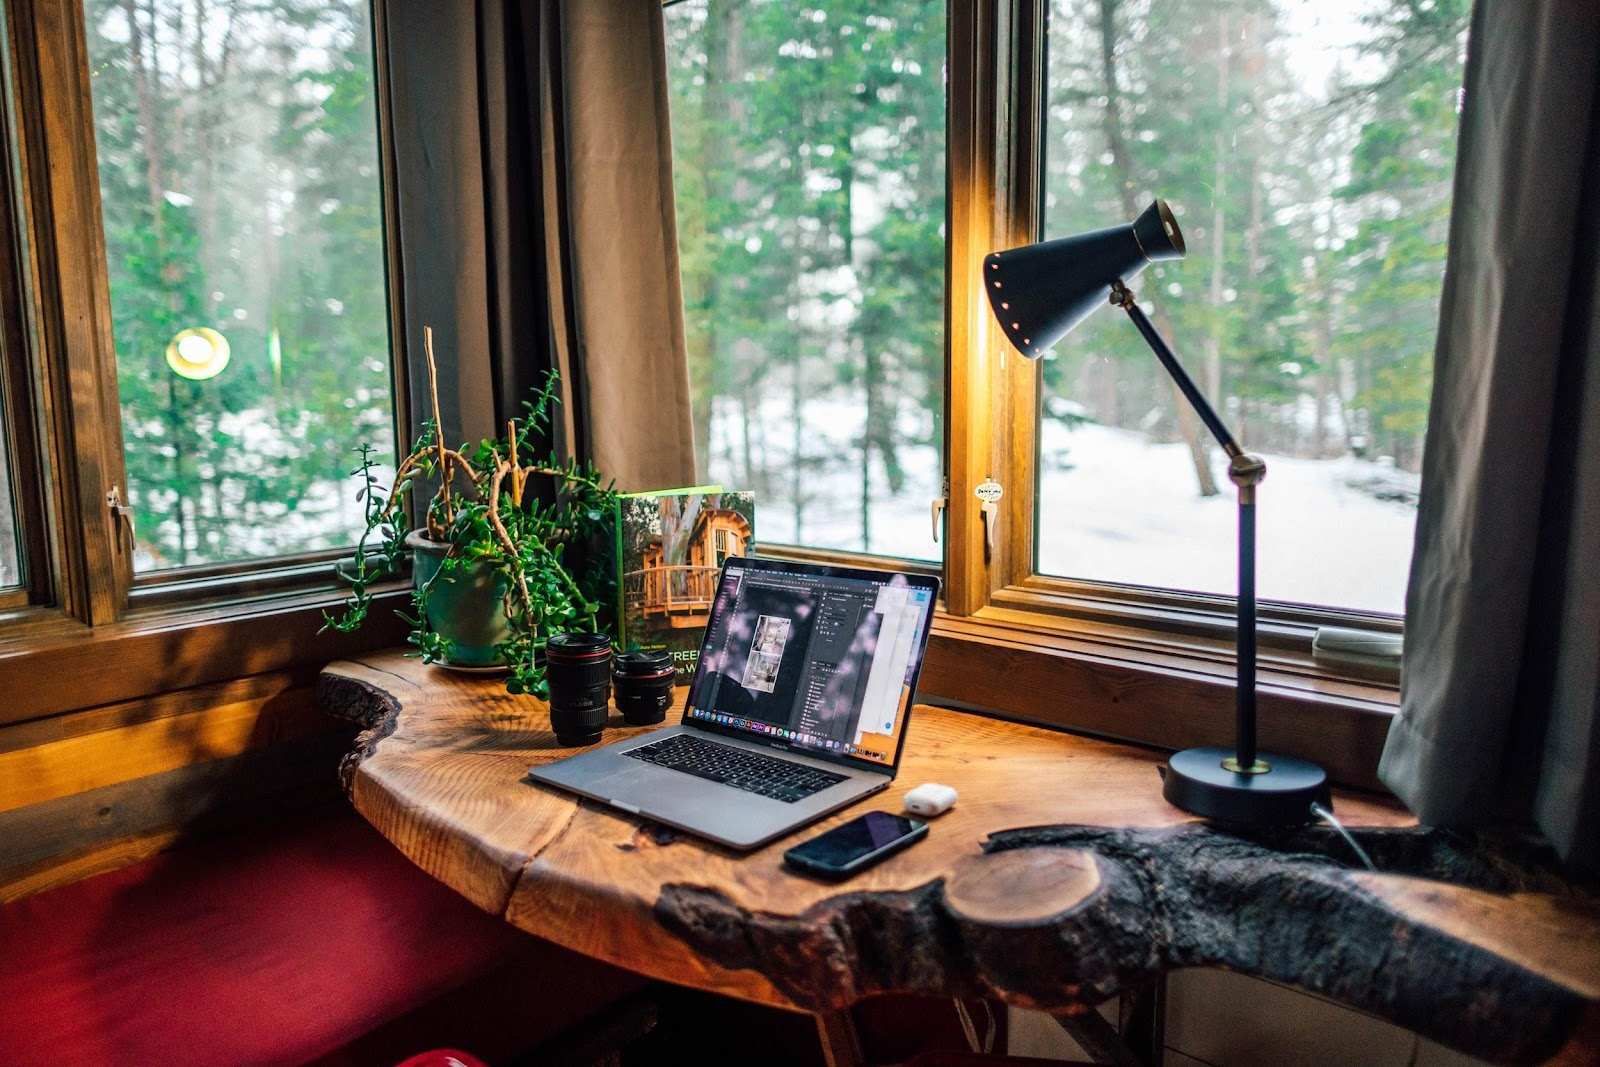 If you don't have an office while working from home, you can create a makeshift office space.